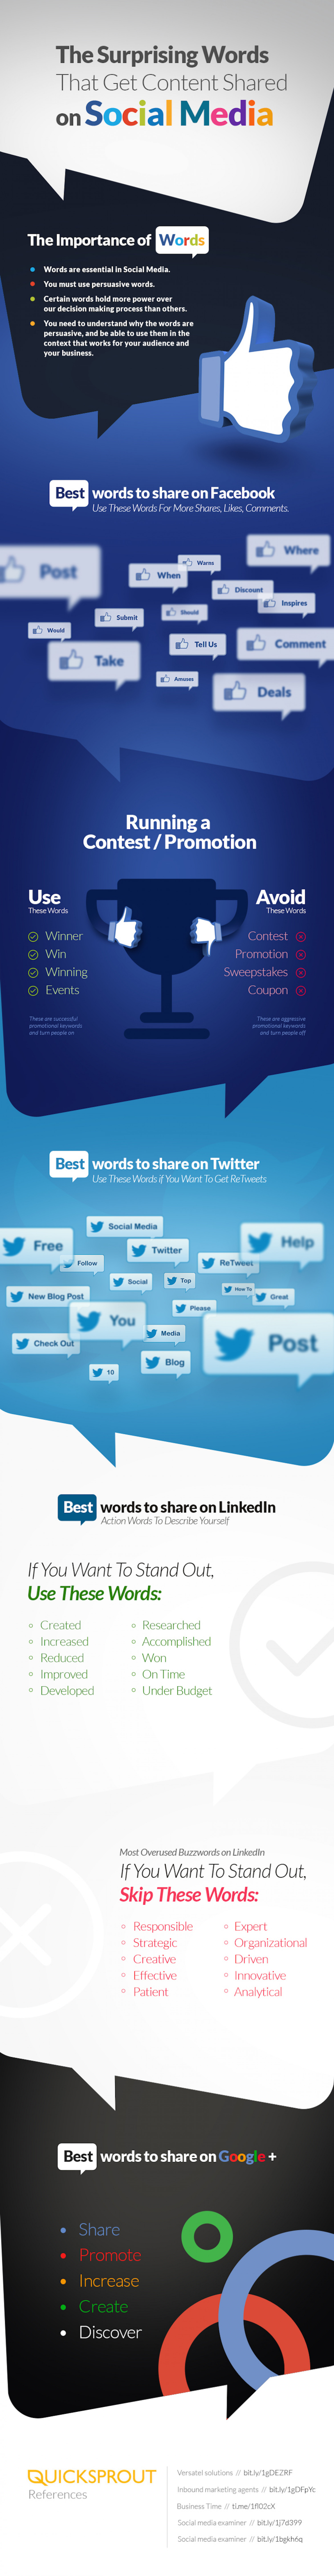 The Surprising Words That Get Content Shared on Social Media Infographic